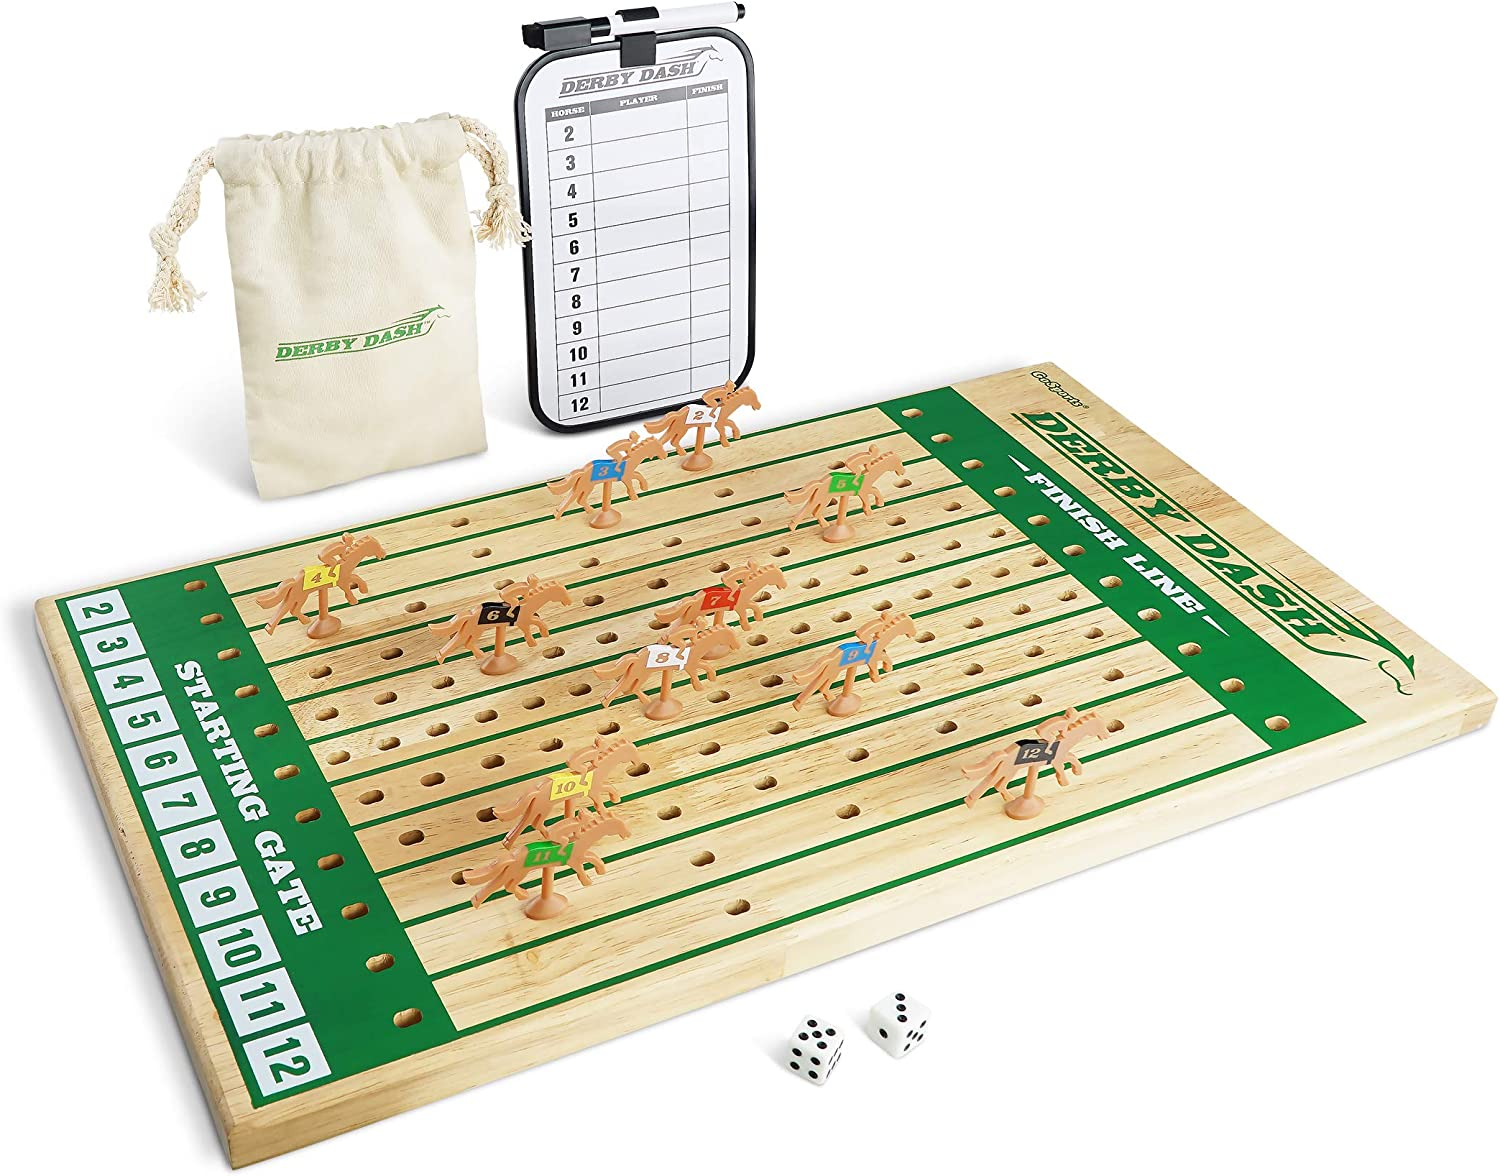 GoSports Derby Dash Horse Race Game Set | Tabletop Horse Racing with 2 Dice and Dry Erase Scoreboard